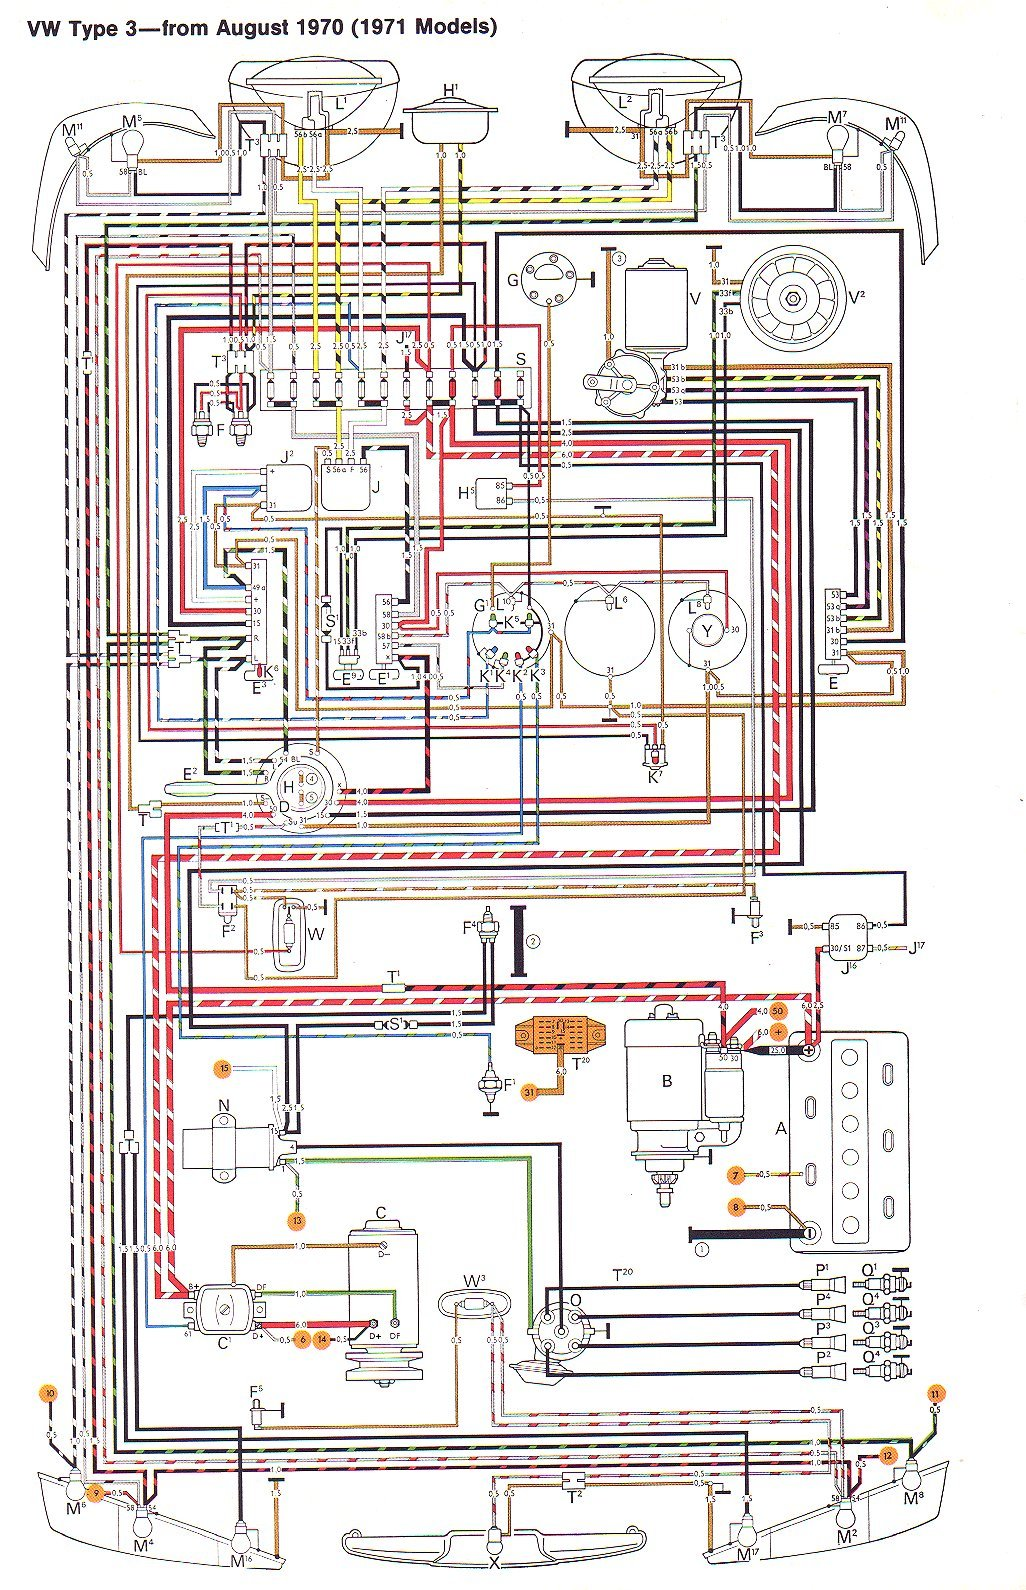 wire71t3 vw type 3 wiring diagrams XJ6 Wiring-Diagram at bayanpartner.co